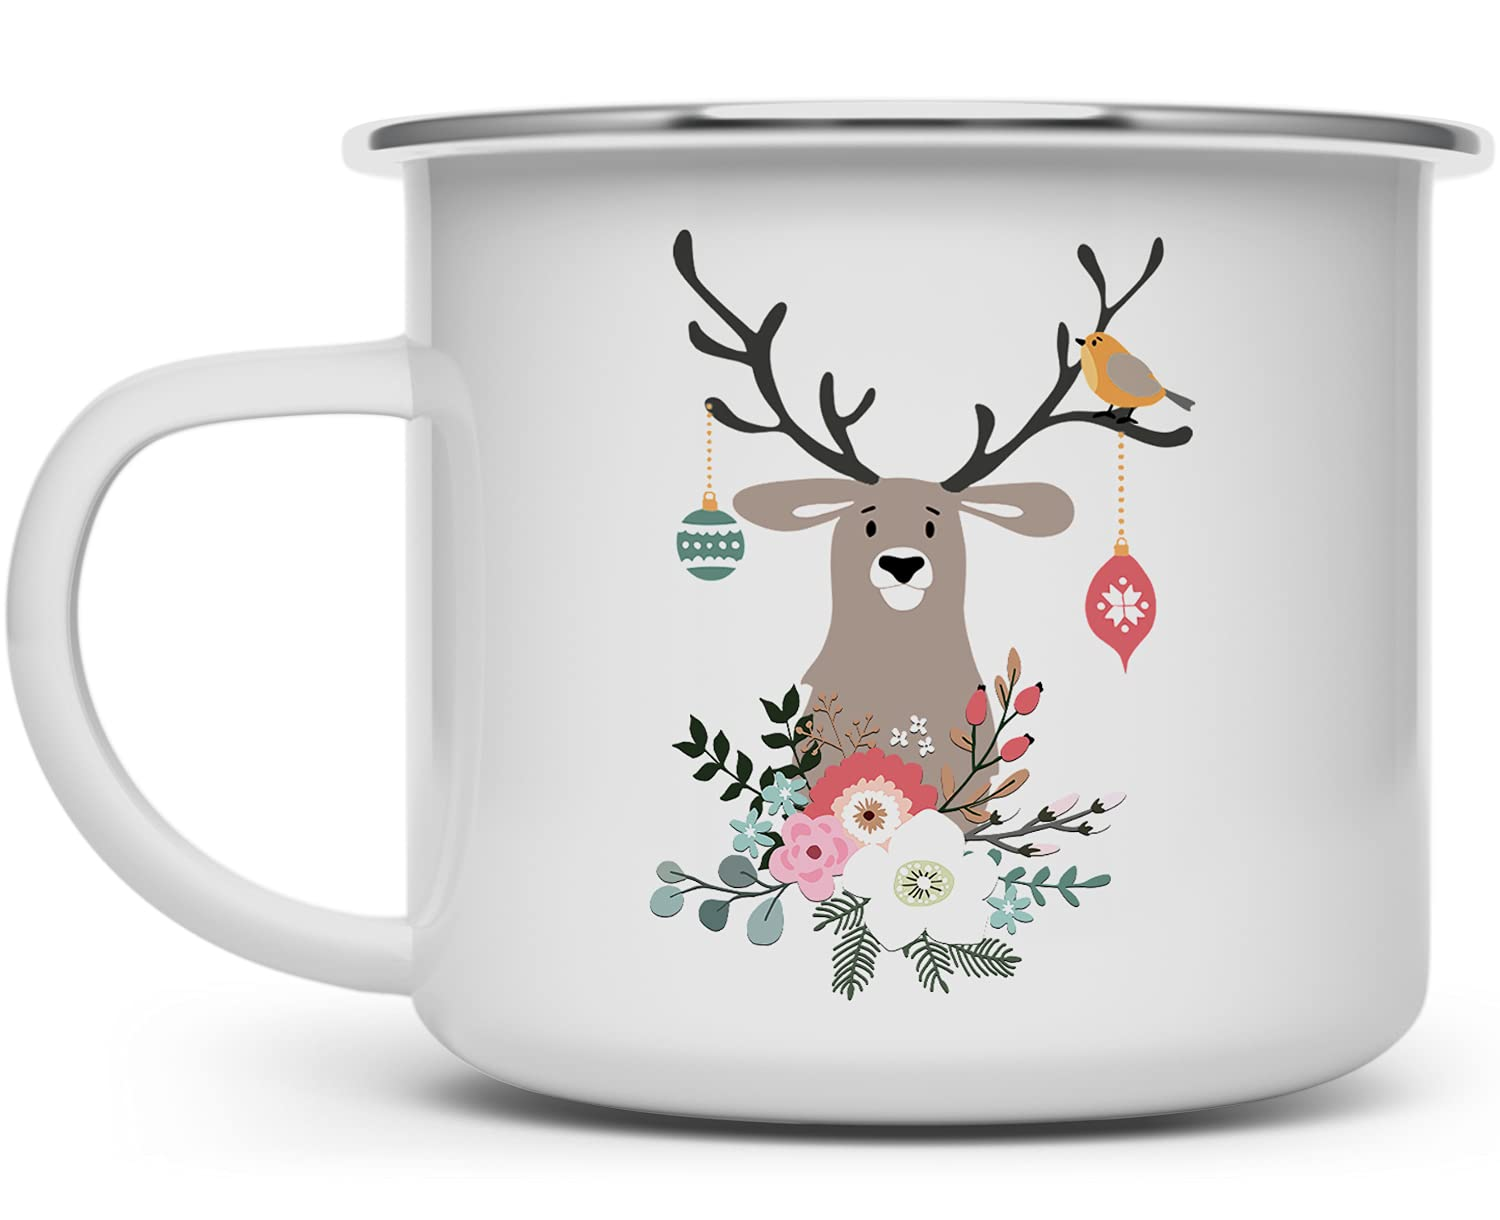 Christmas Holiday Max 89% OFF Woodland Deer Campfire Enamel Outlet sale feature Coffee Outd Mug